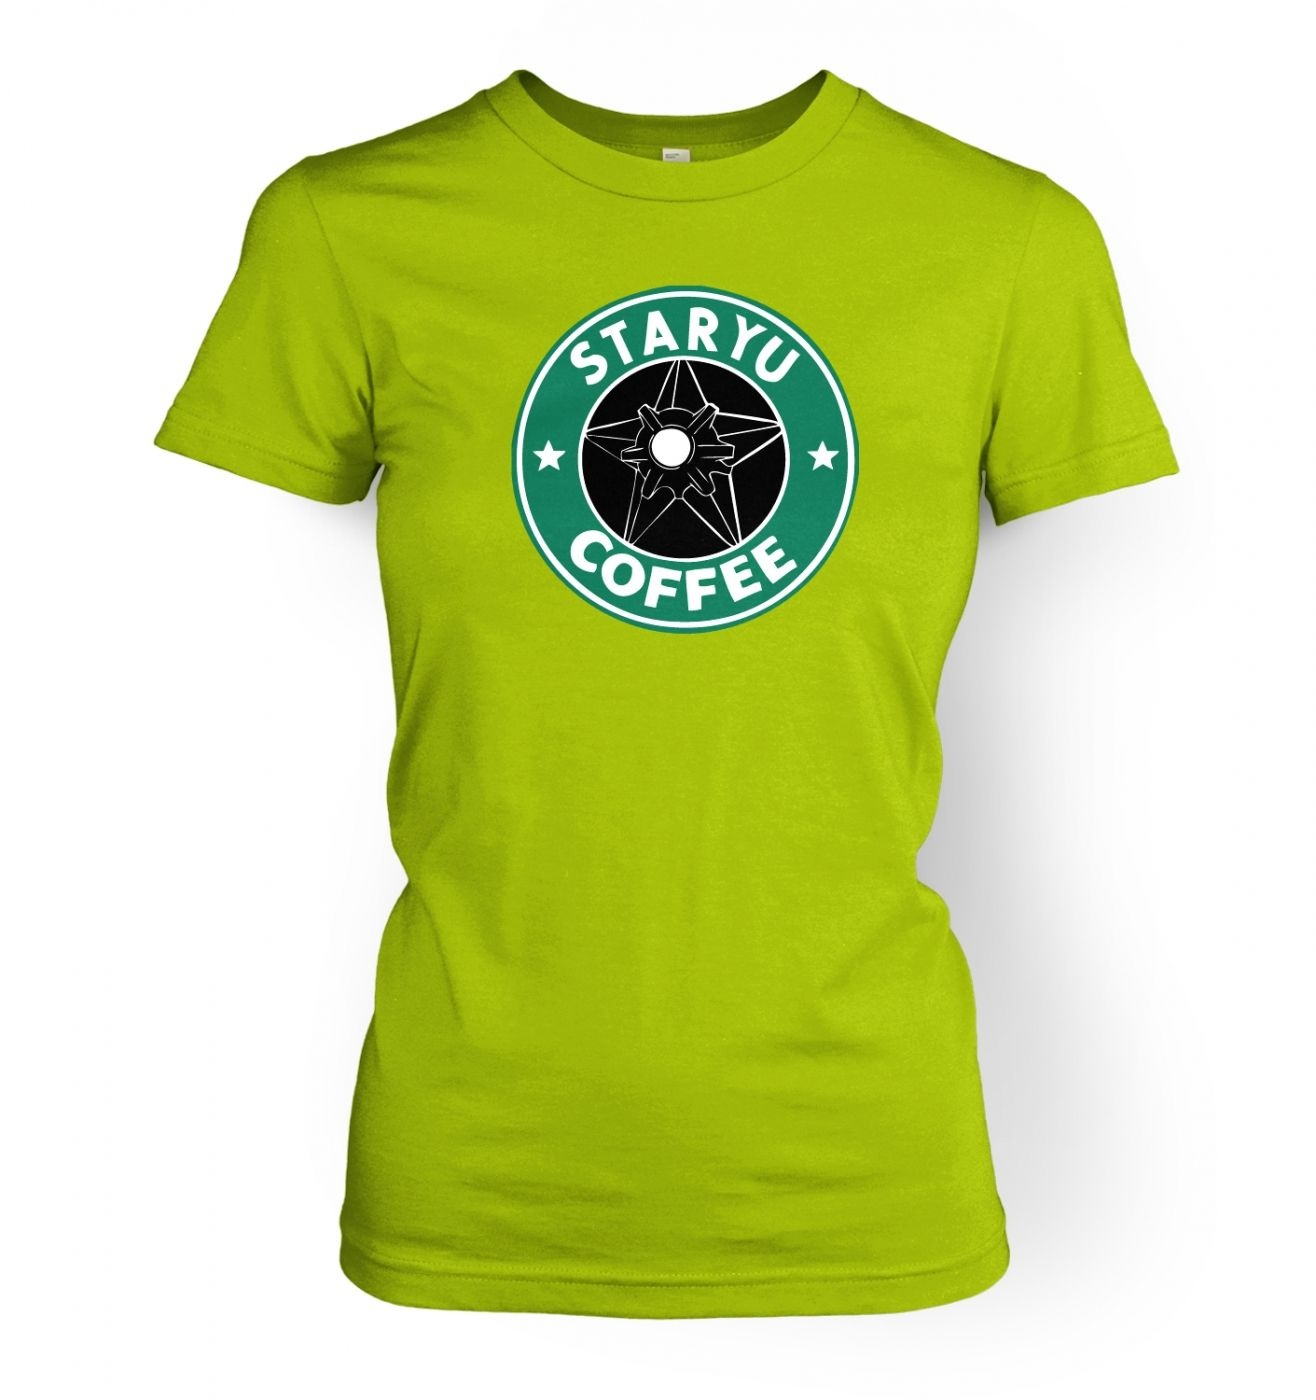 Women's Staryu Coffee T-Shirt - Inspired by Pokemon